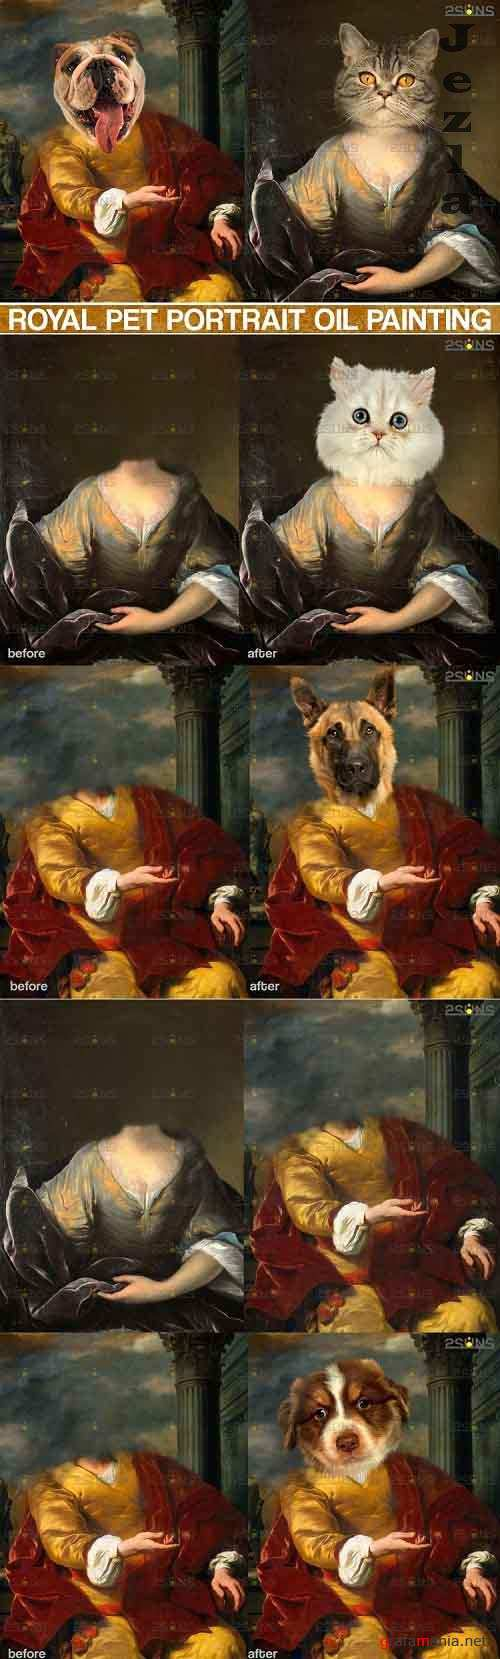 Royal Pet Portrait templates, Pet Painting Oil Photoshop v.3  - 617027